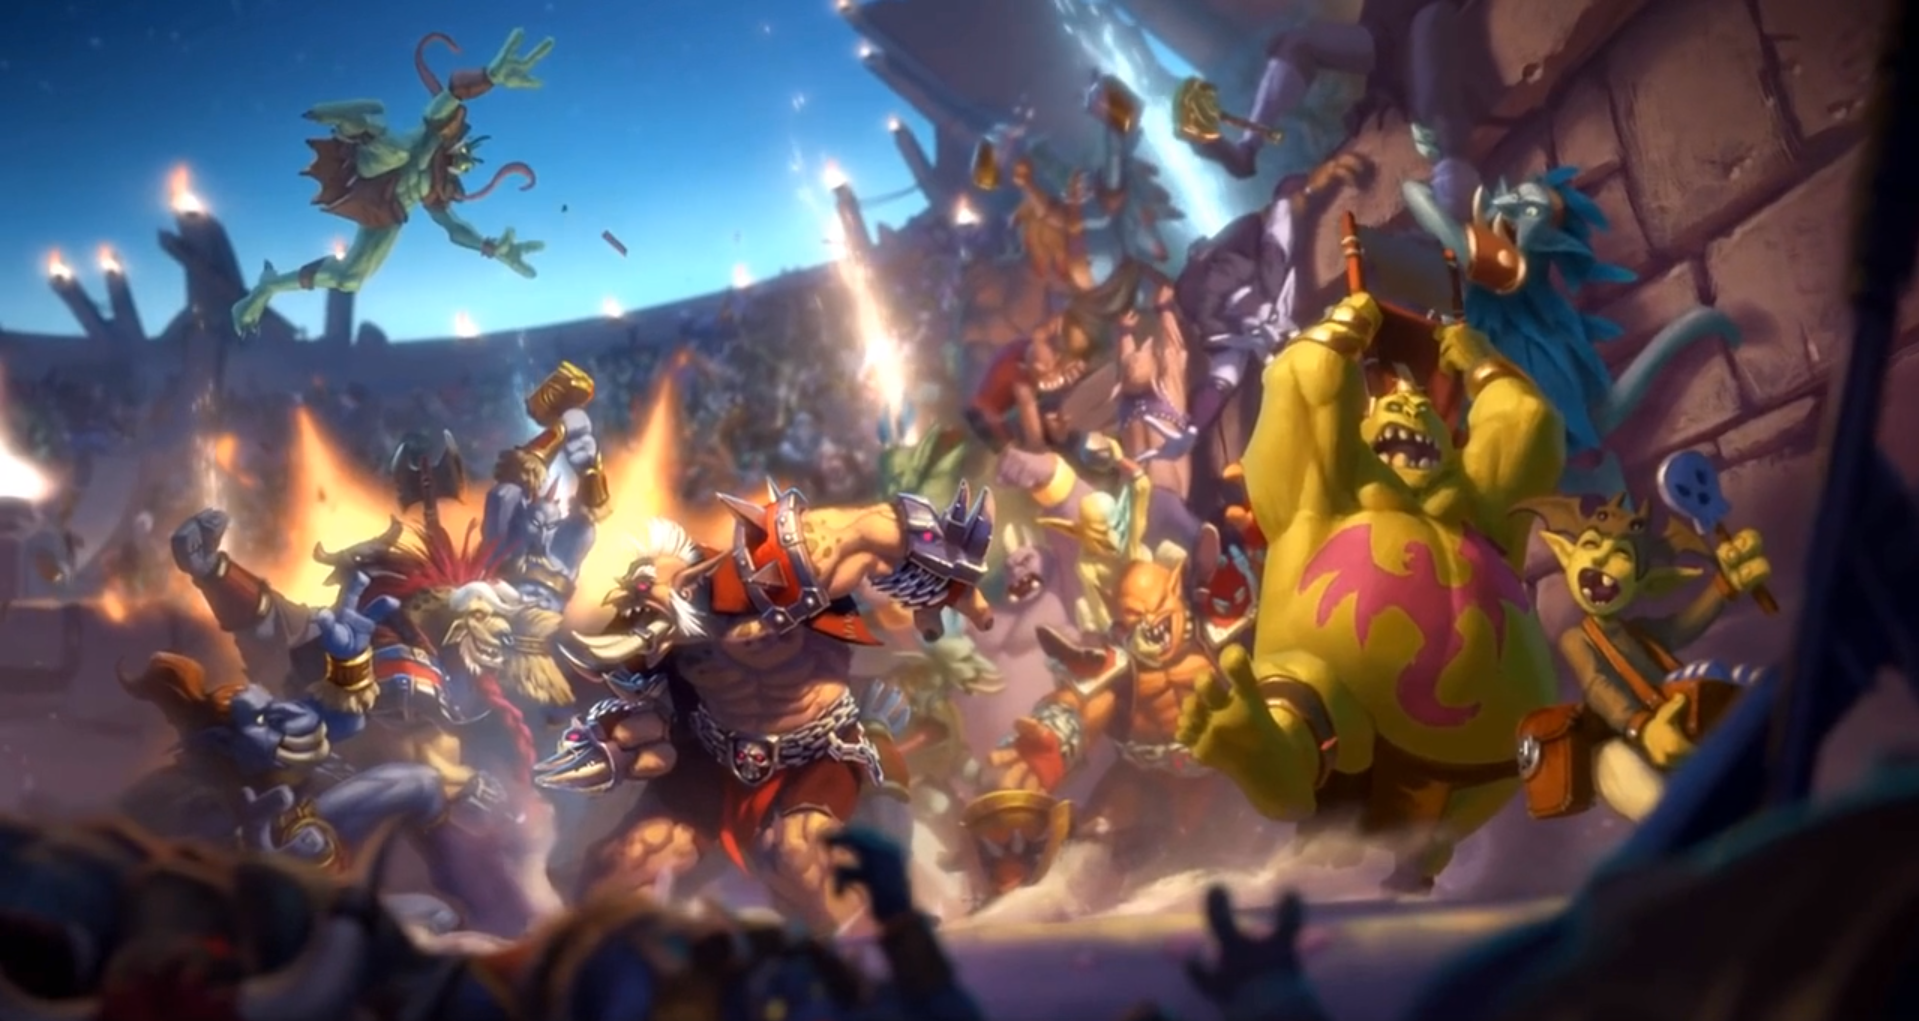 Scorch: Hearthstone's newest card revealed ahead of the upcoming expansion